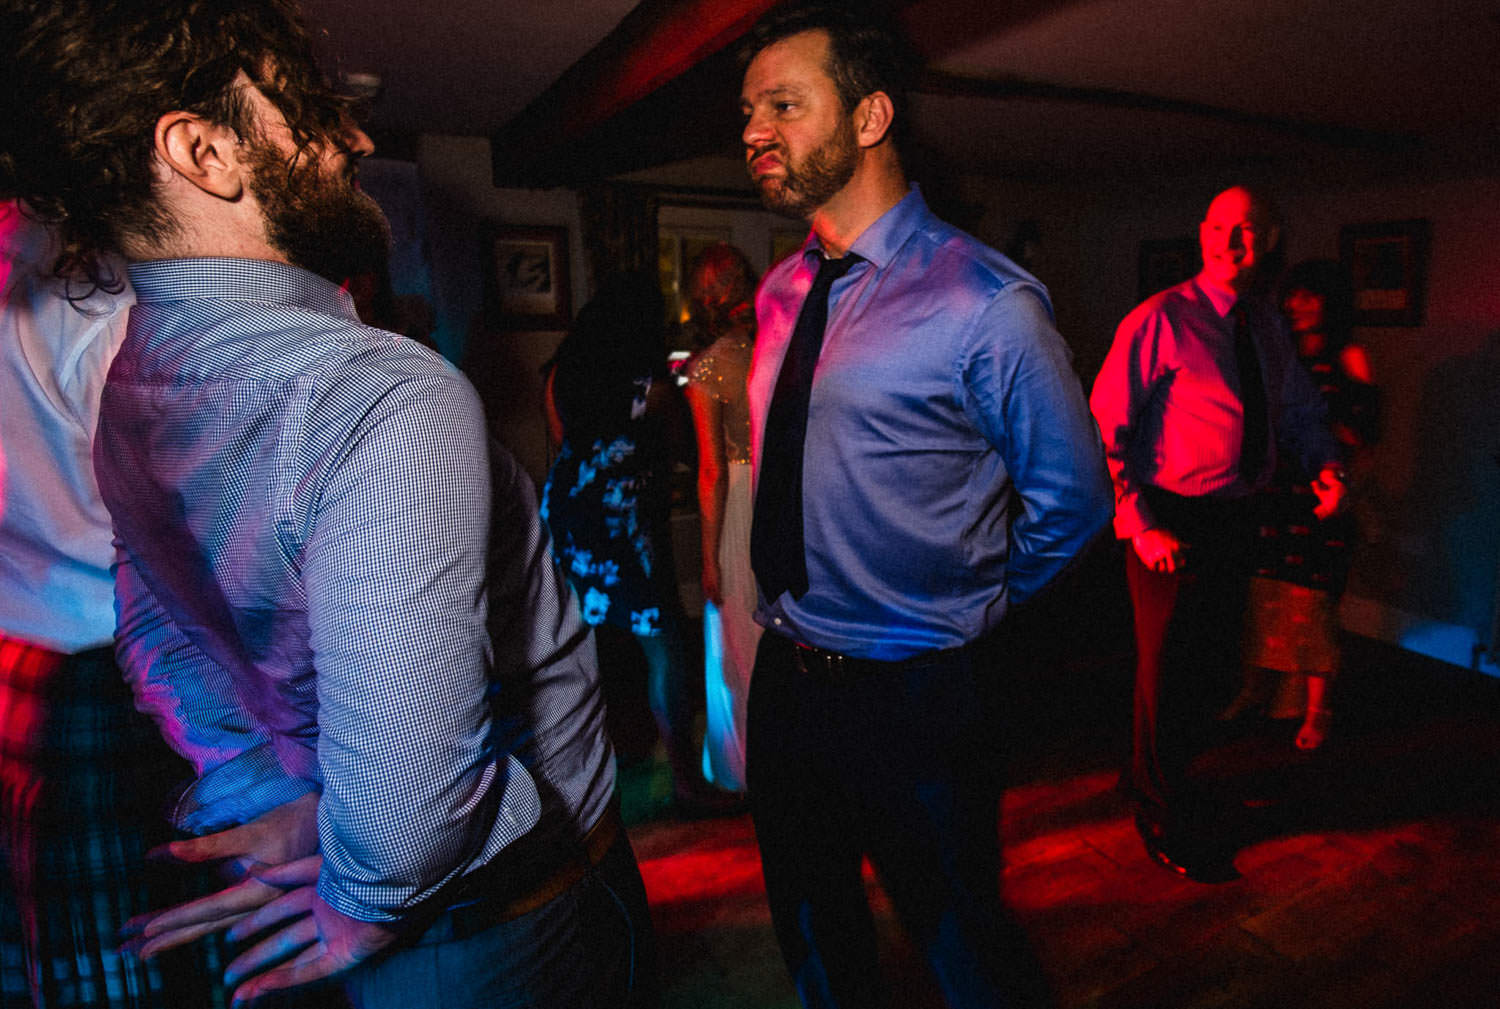 Documentary wedding disco photography in Lake District